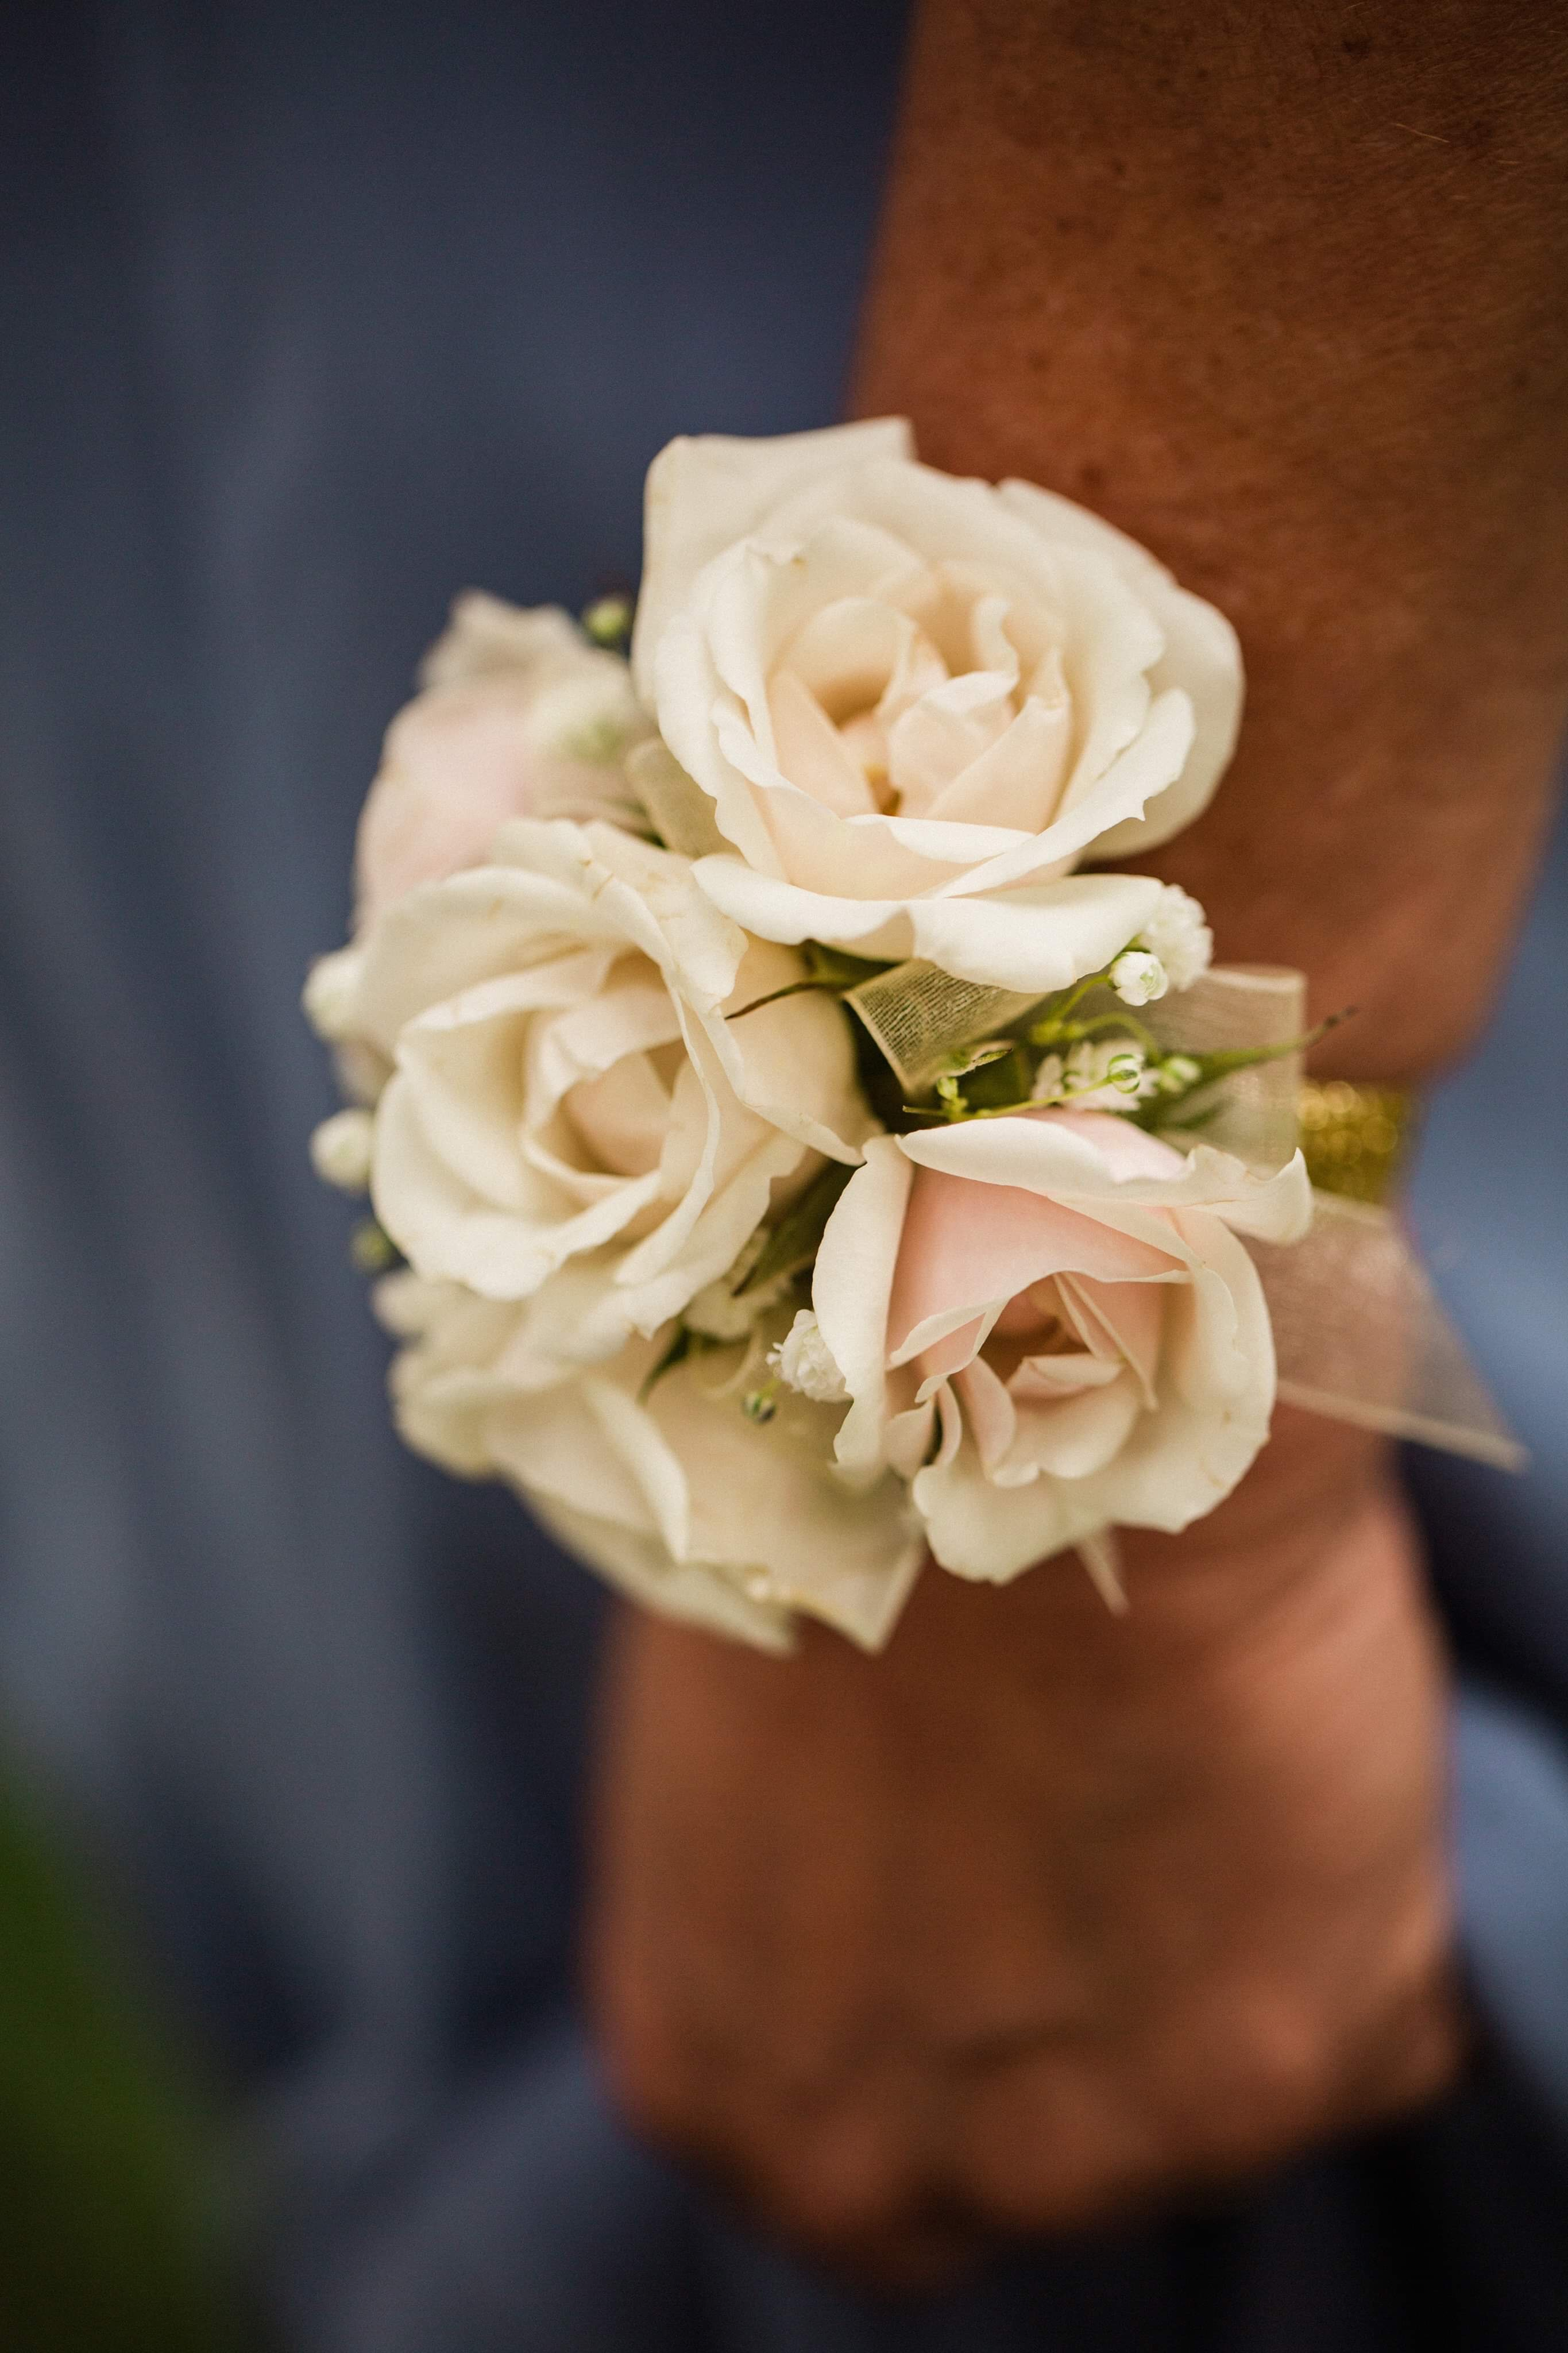 Wrist corsage Kristen Koppers Photography